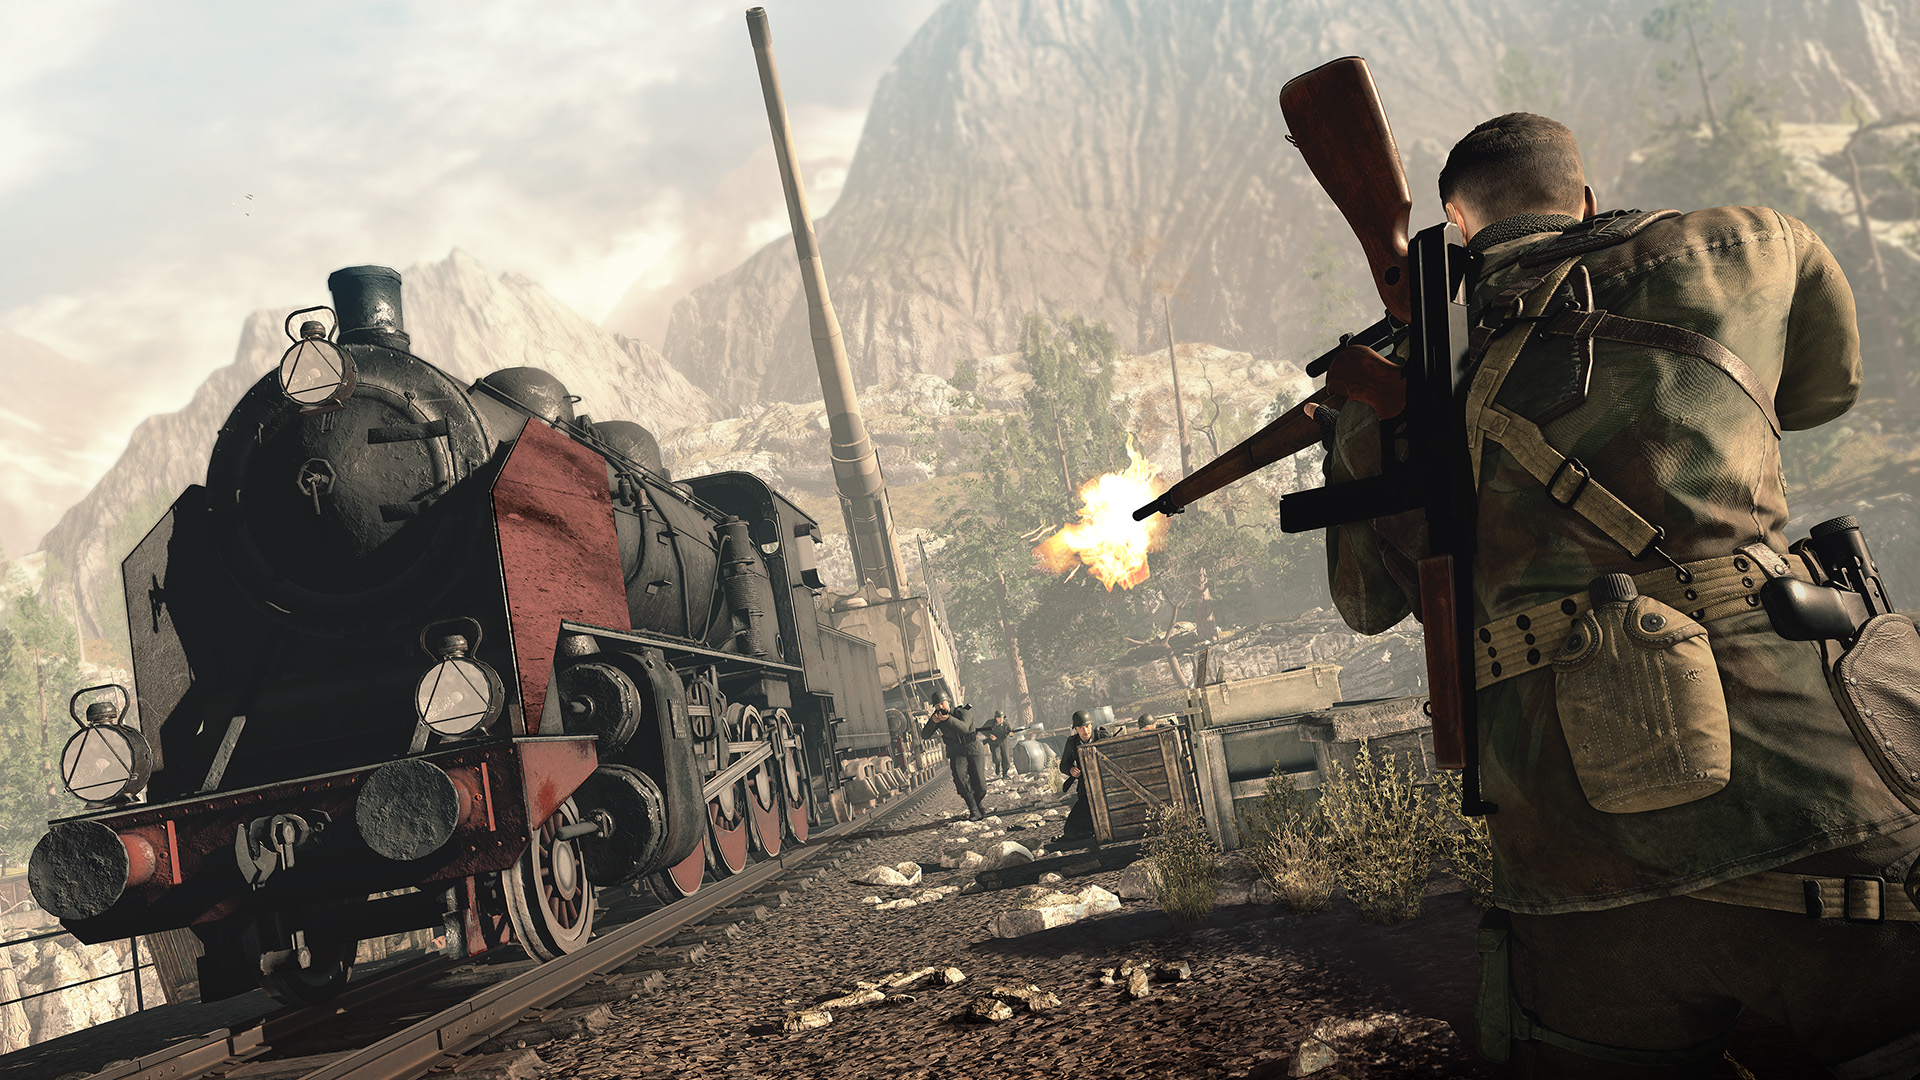 Sniper Elite 4 is going back to Germany with its latest expansion 1